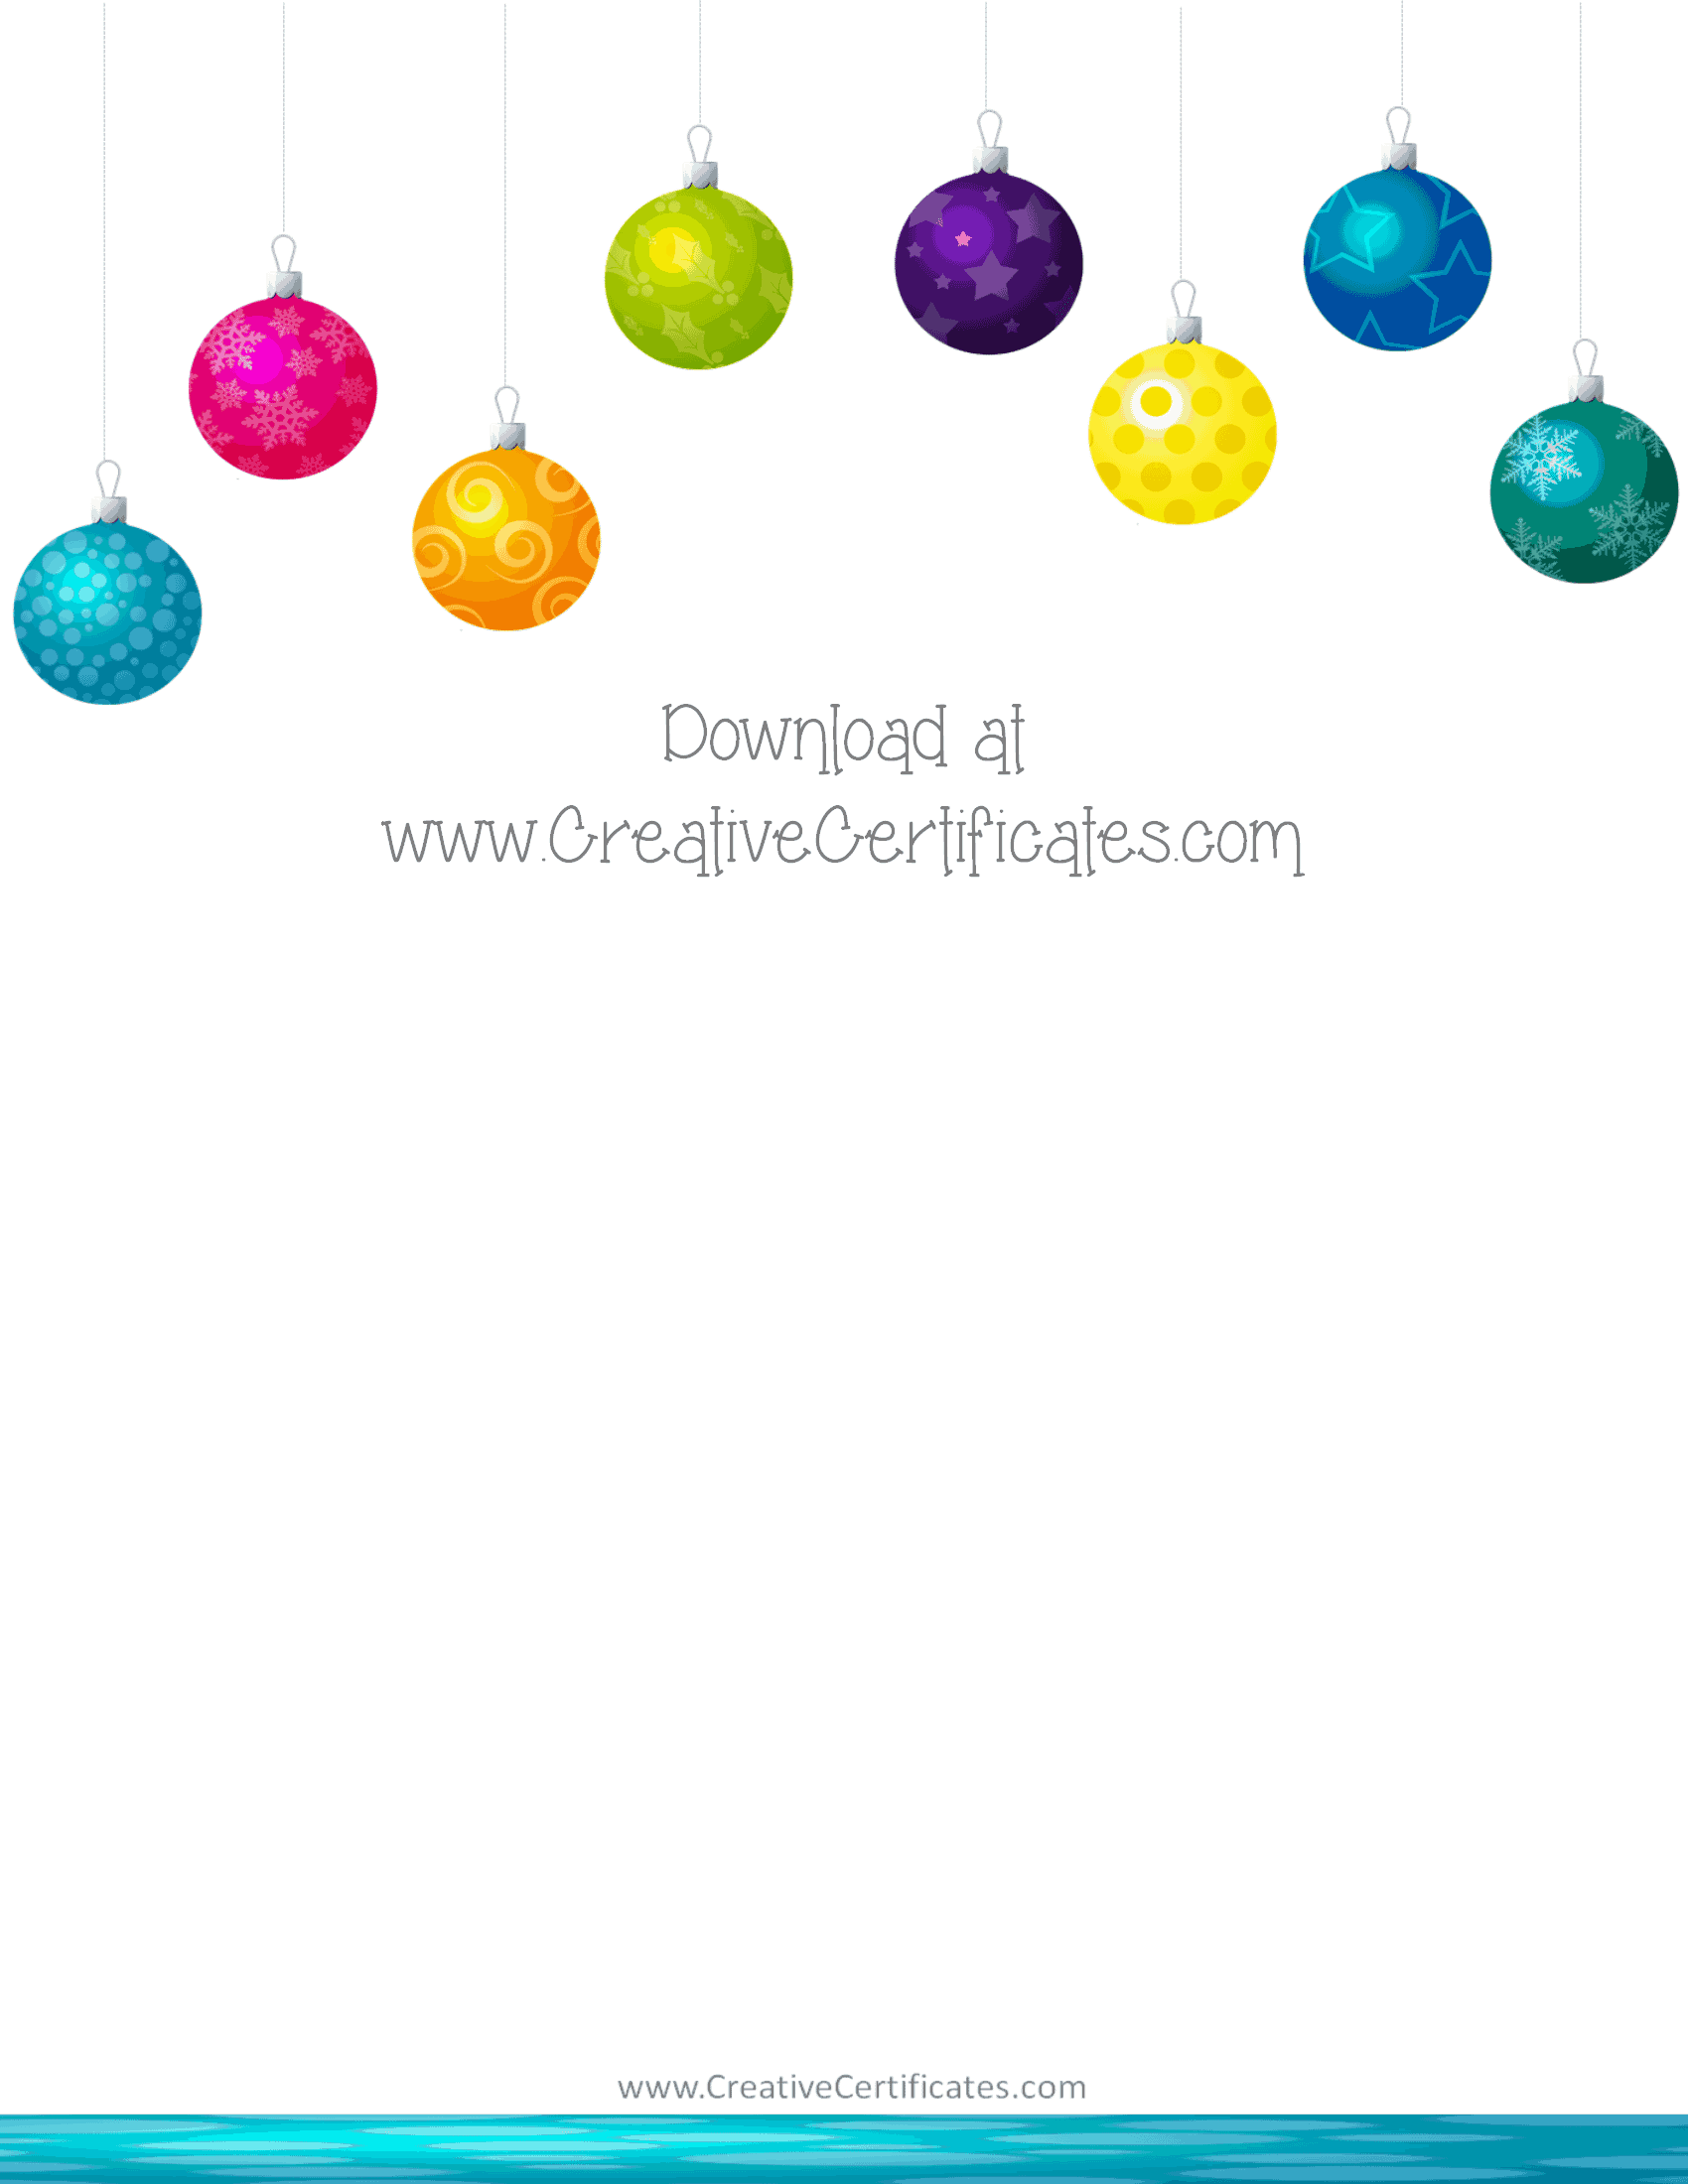 Free christmas border templates customize online then download christmas clipart border with hanging christmas ornaments in eight different colors voltagebd Gallery